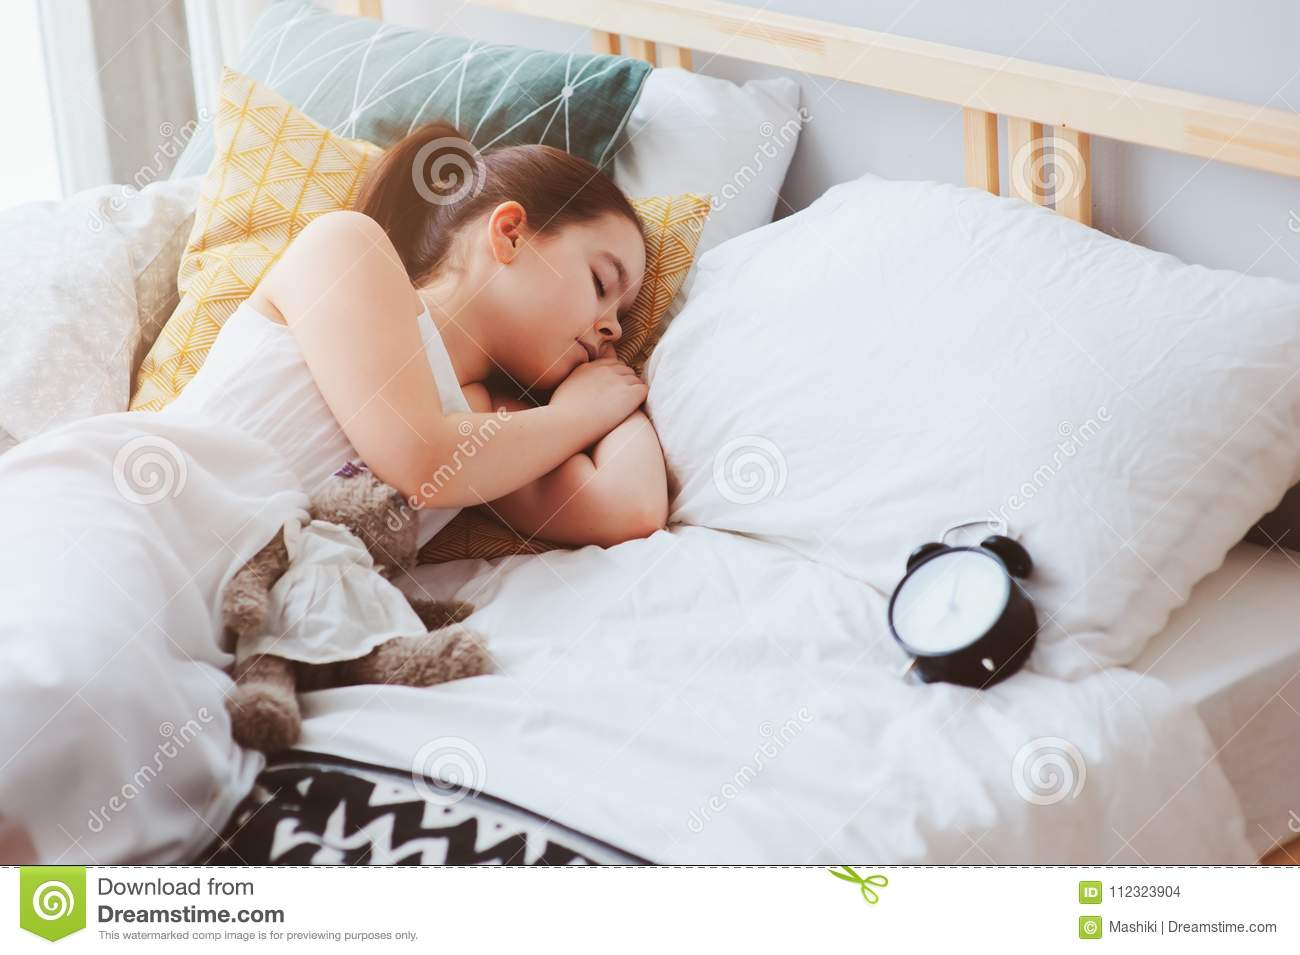 Kid girl sleeping in early morning in bed with alarm clock